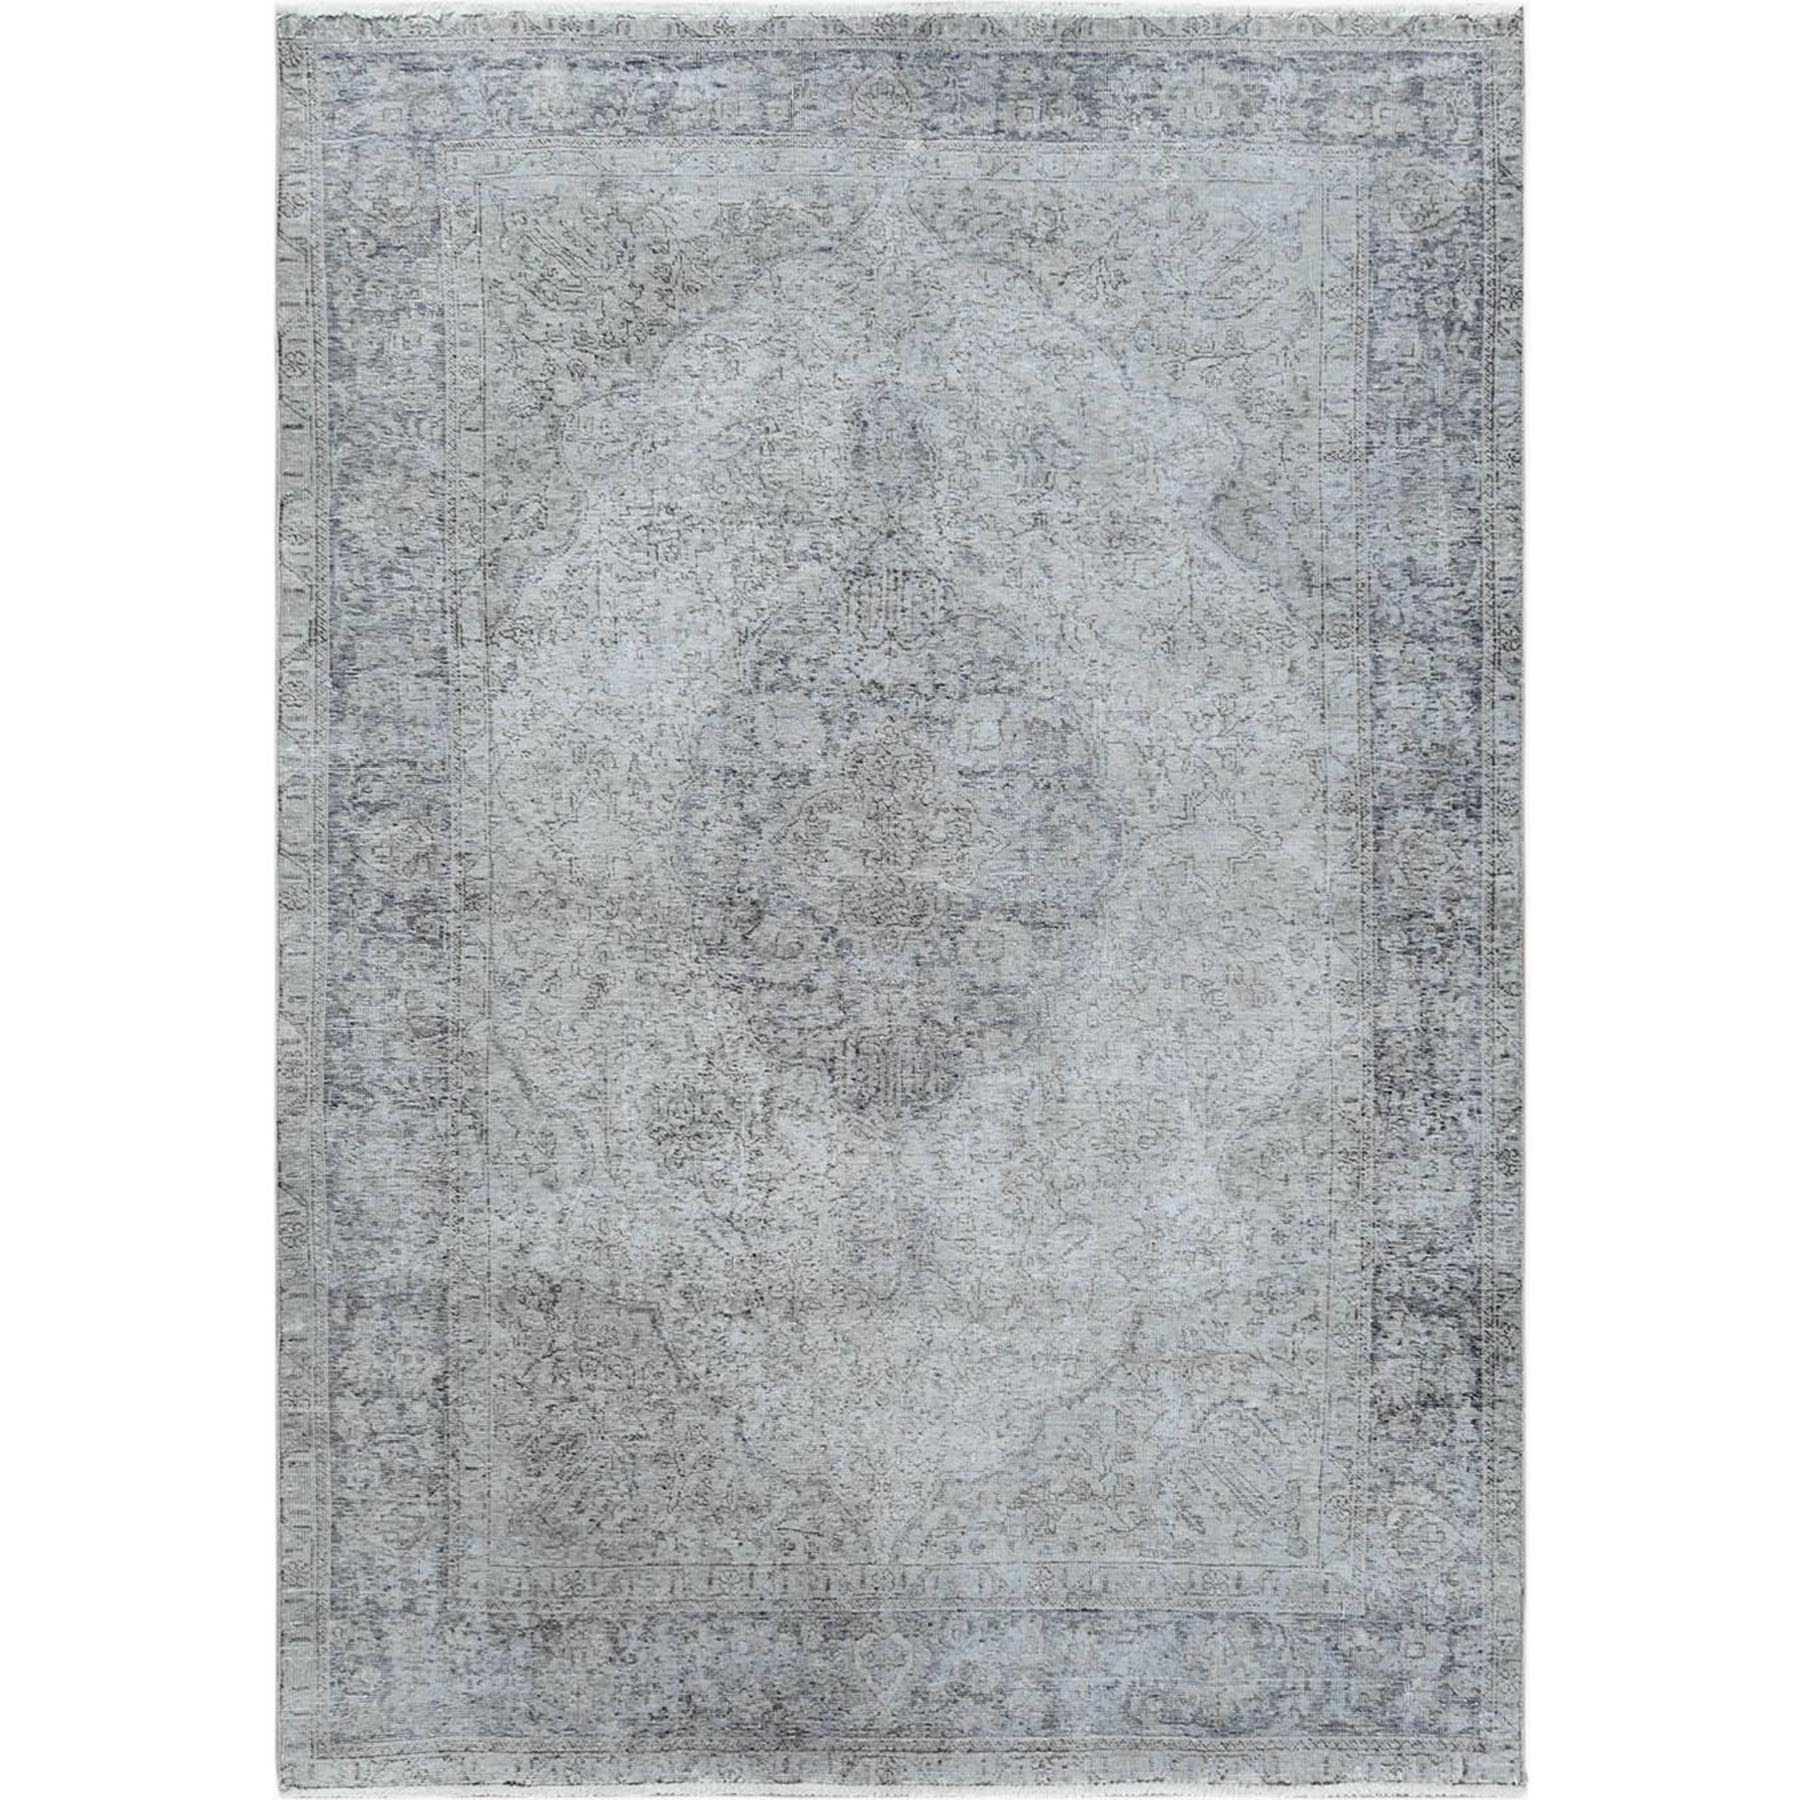 Fetneh Collection And Vintage Overdyed Collection Hand Knotted Grey Rug No: 1122622